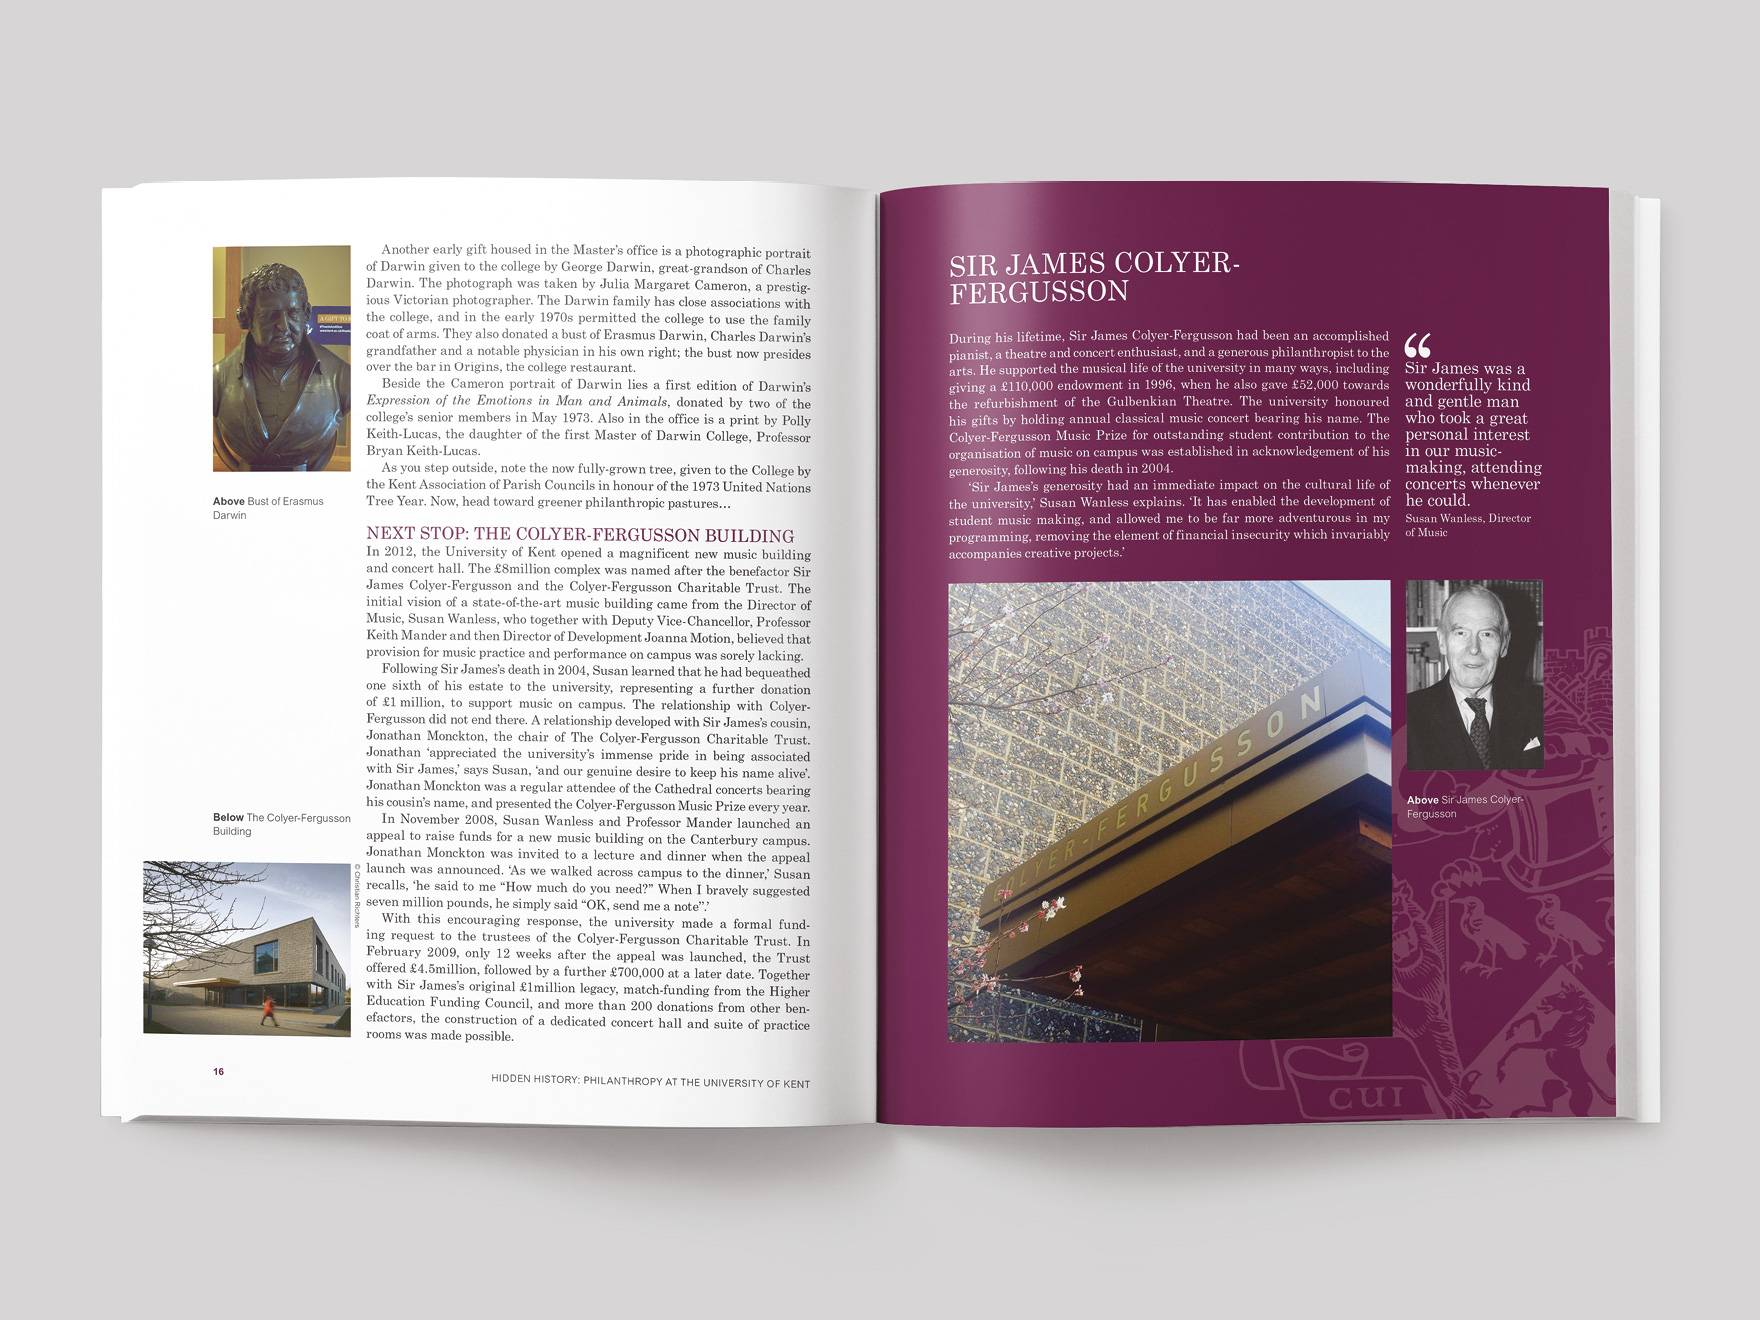 Inside pages from the Hidden History book showing the history of the Colyer-Fergusson building and a case study about Sir James Colyer-Fergusson